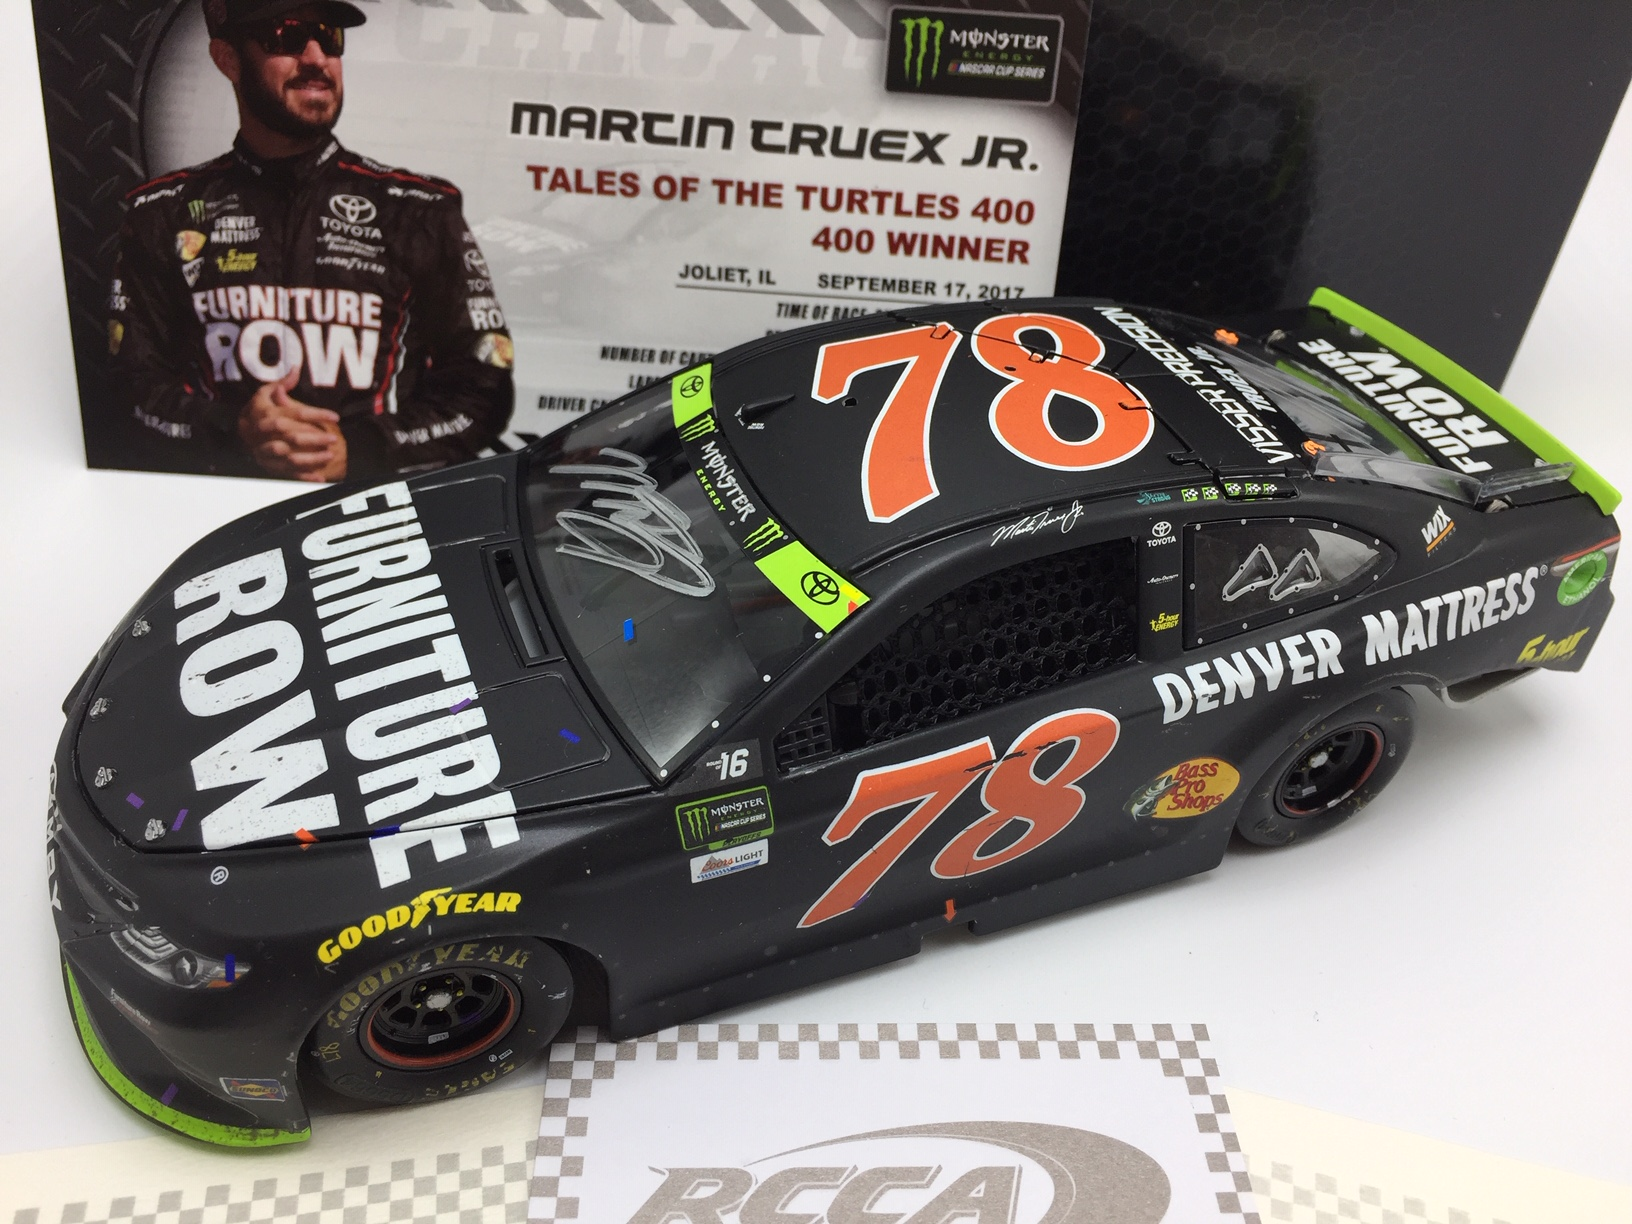 MARTIN TRUEX JR. 2017 FURNITURE ROW CHICAGOLAND RACED WIN 1:24 ELITE AUTOGRAPHED DIECAST